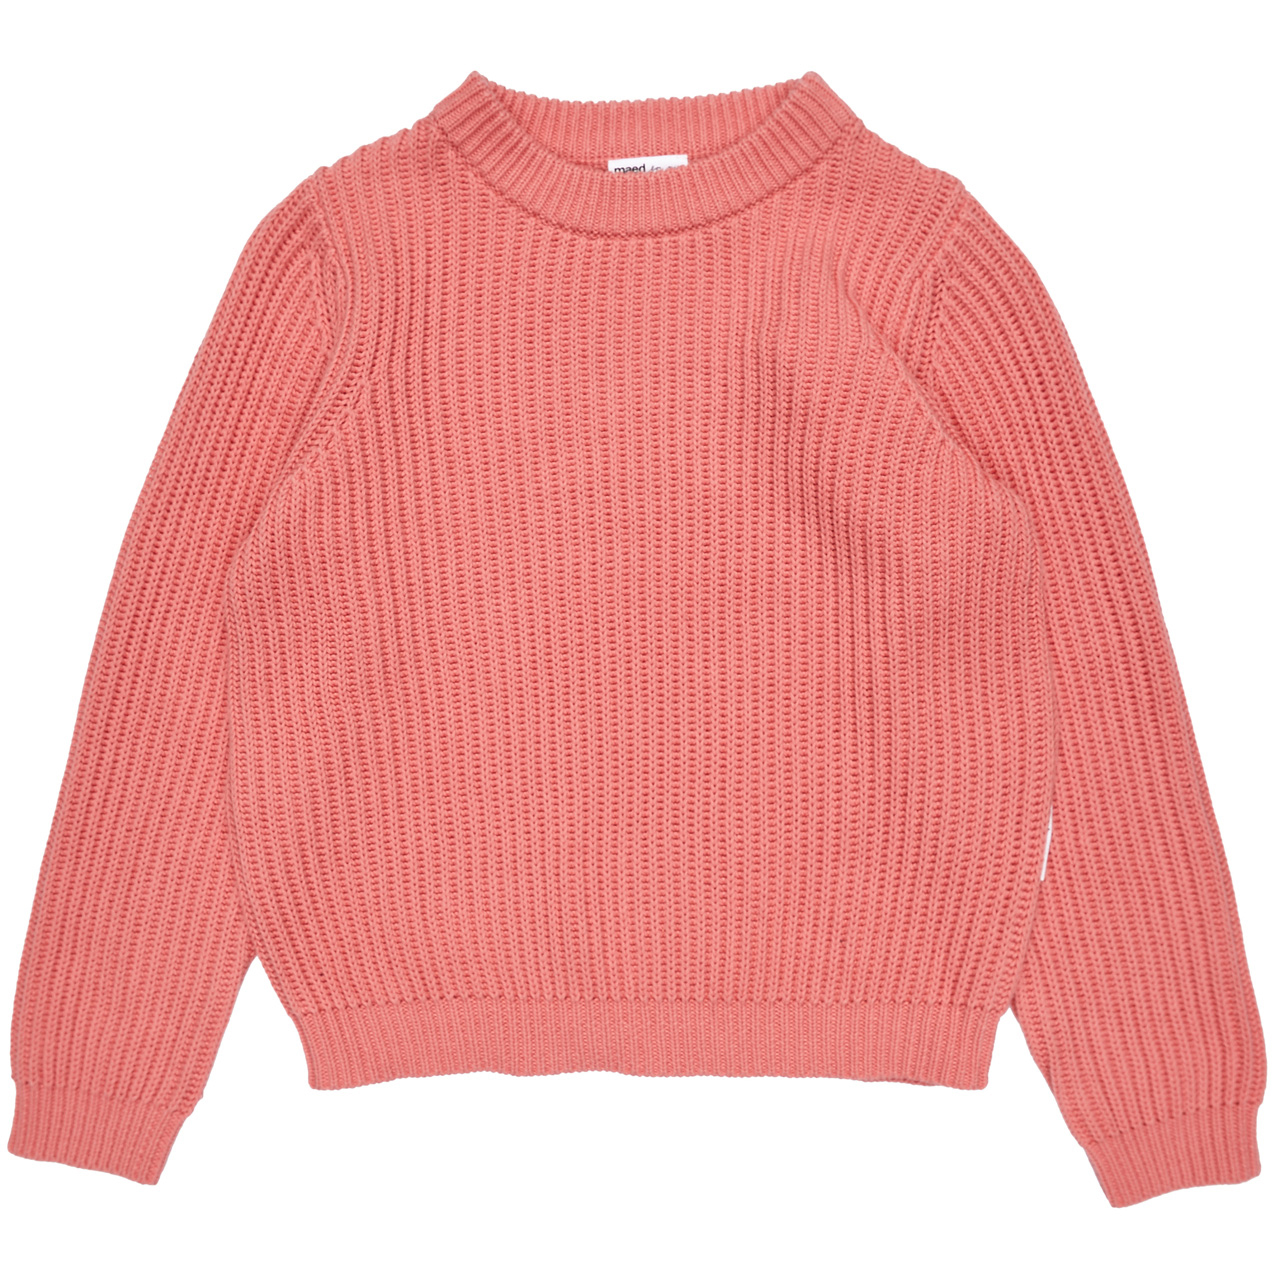 Maed for mini - Pink panther knit sweater